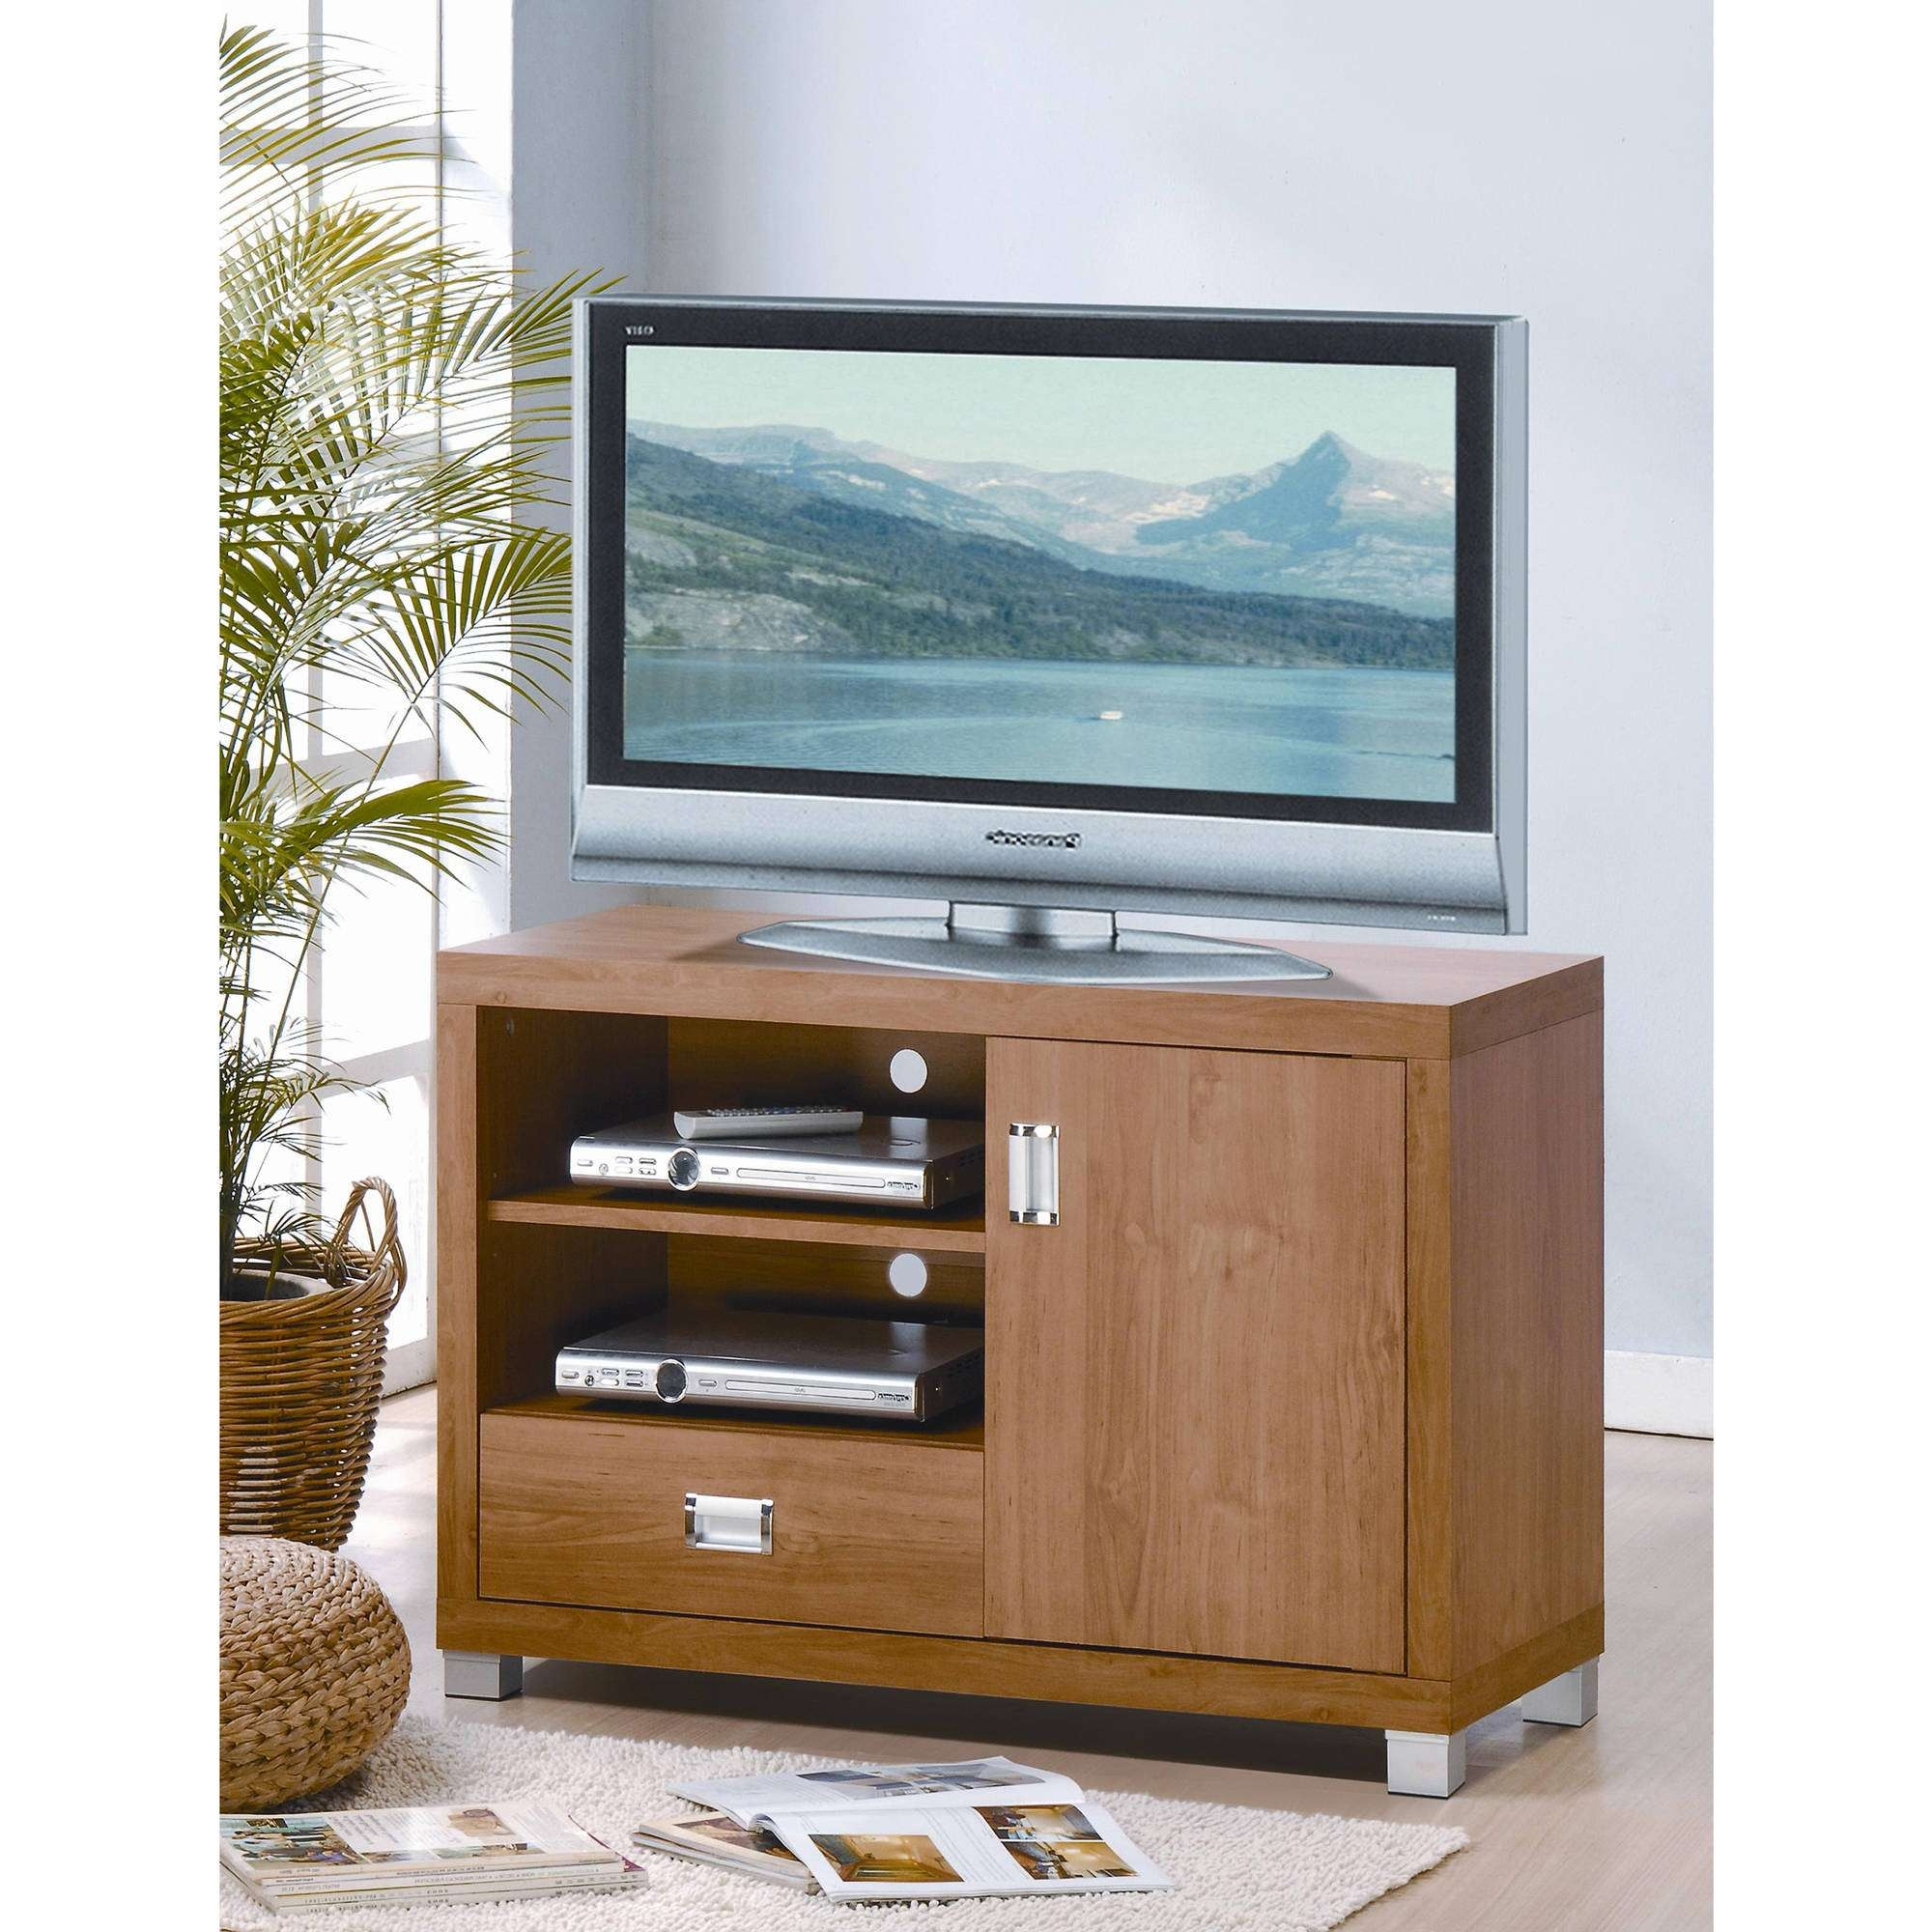 Techni Mobili Tv Cabinet, Maple – Walmart With Regard To Maple Wood Tv Stands (View 6 of 15)